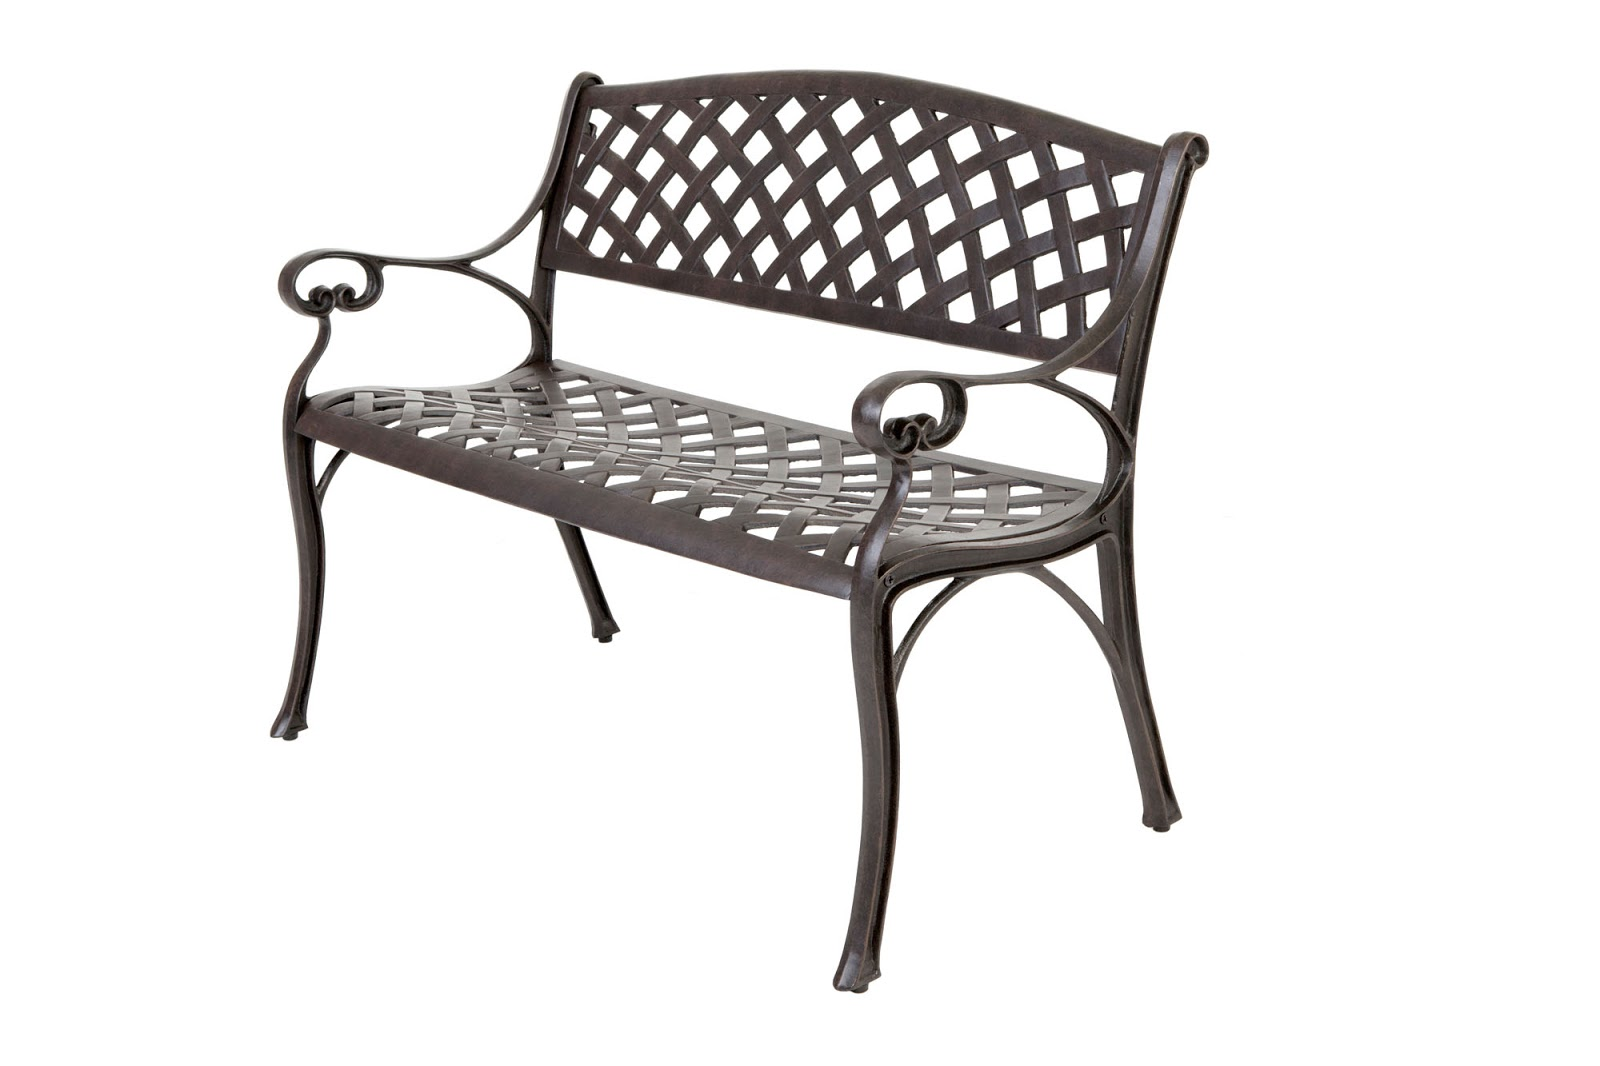 Outside Edge Garden Furniture Blog Free Cast Aluminium